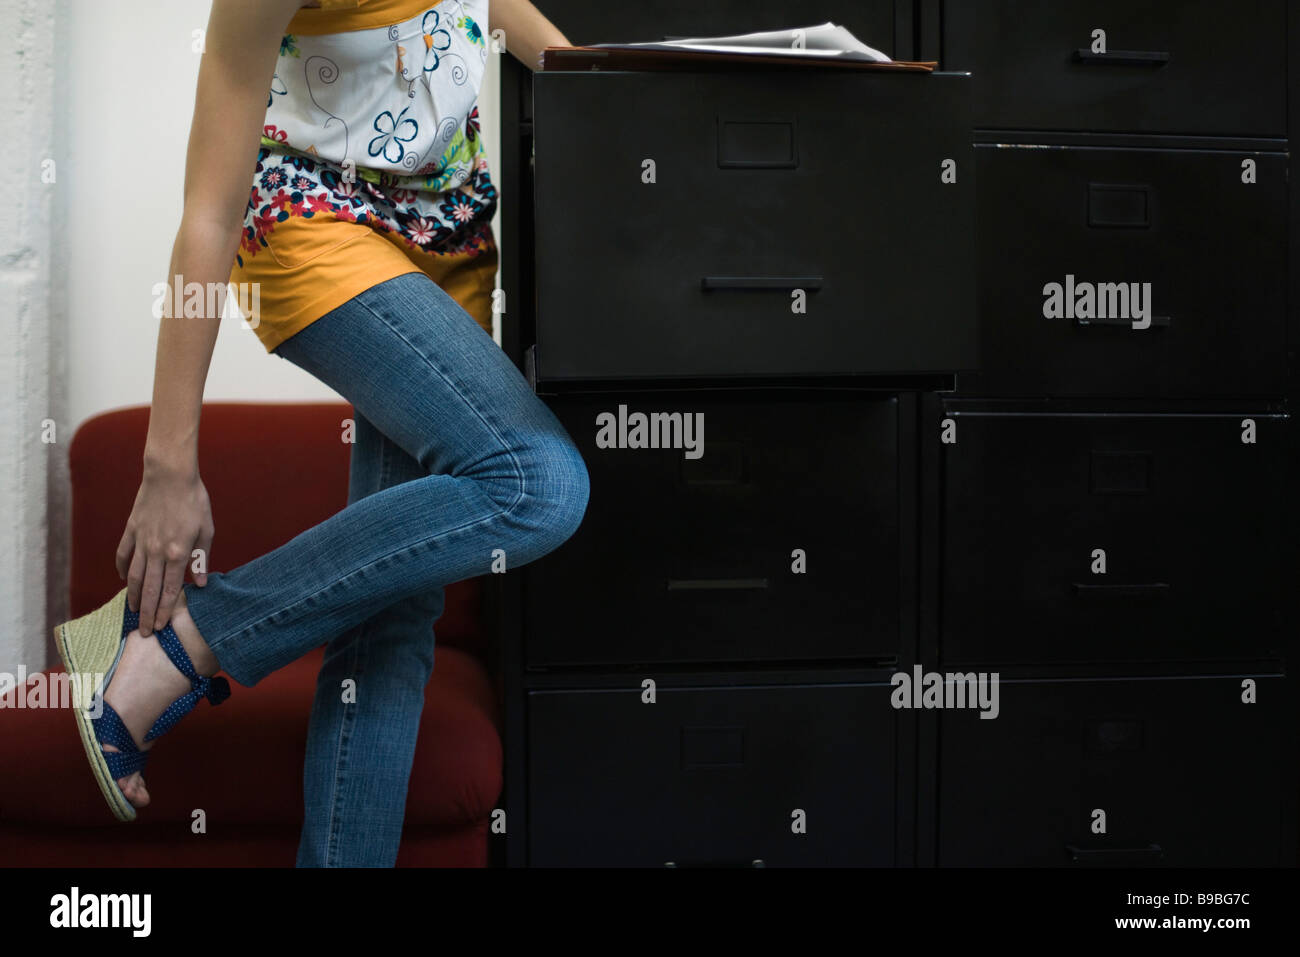 Woman adjusting shoe, leaning against filing cabinet - Stock Image